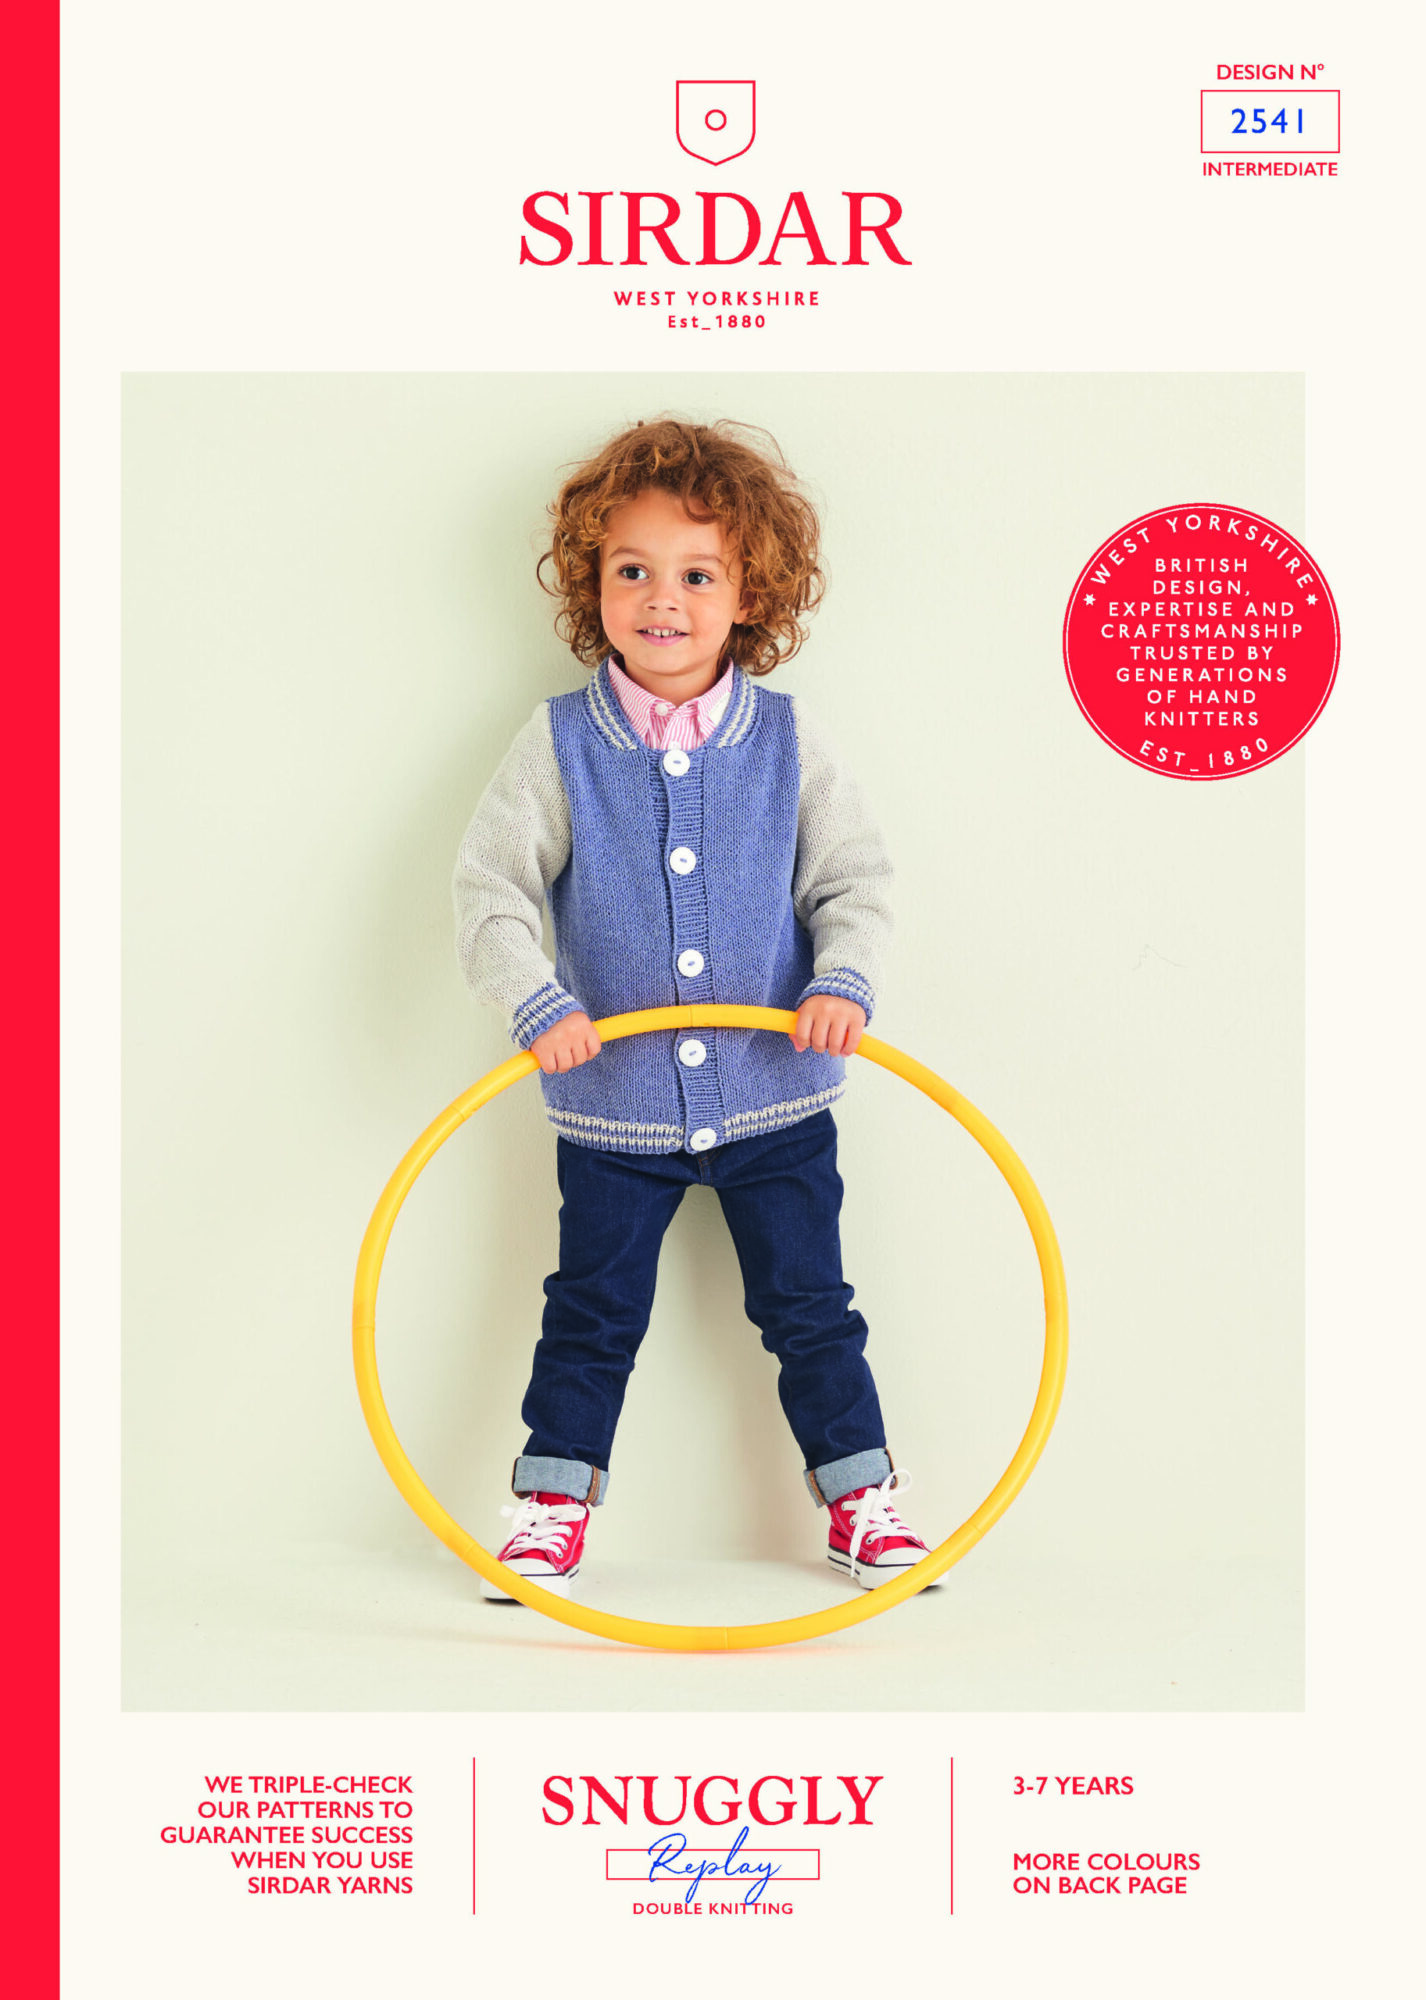 Sirdar Pattern Replay 2541 (DOWNLOAD) product image